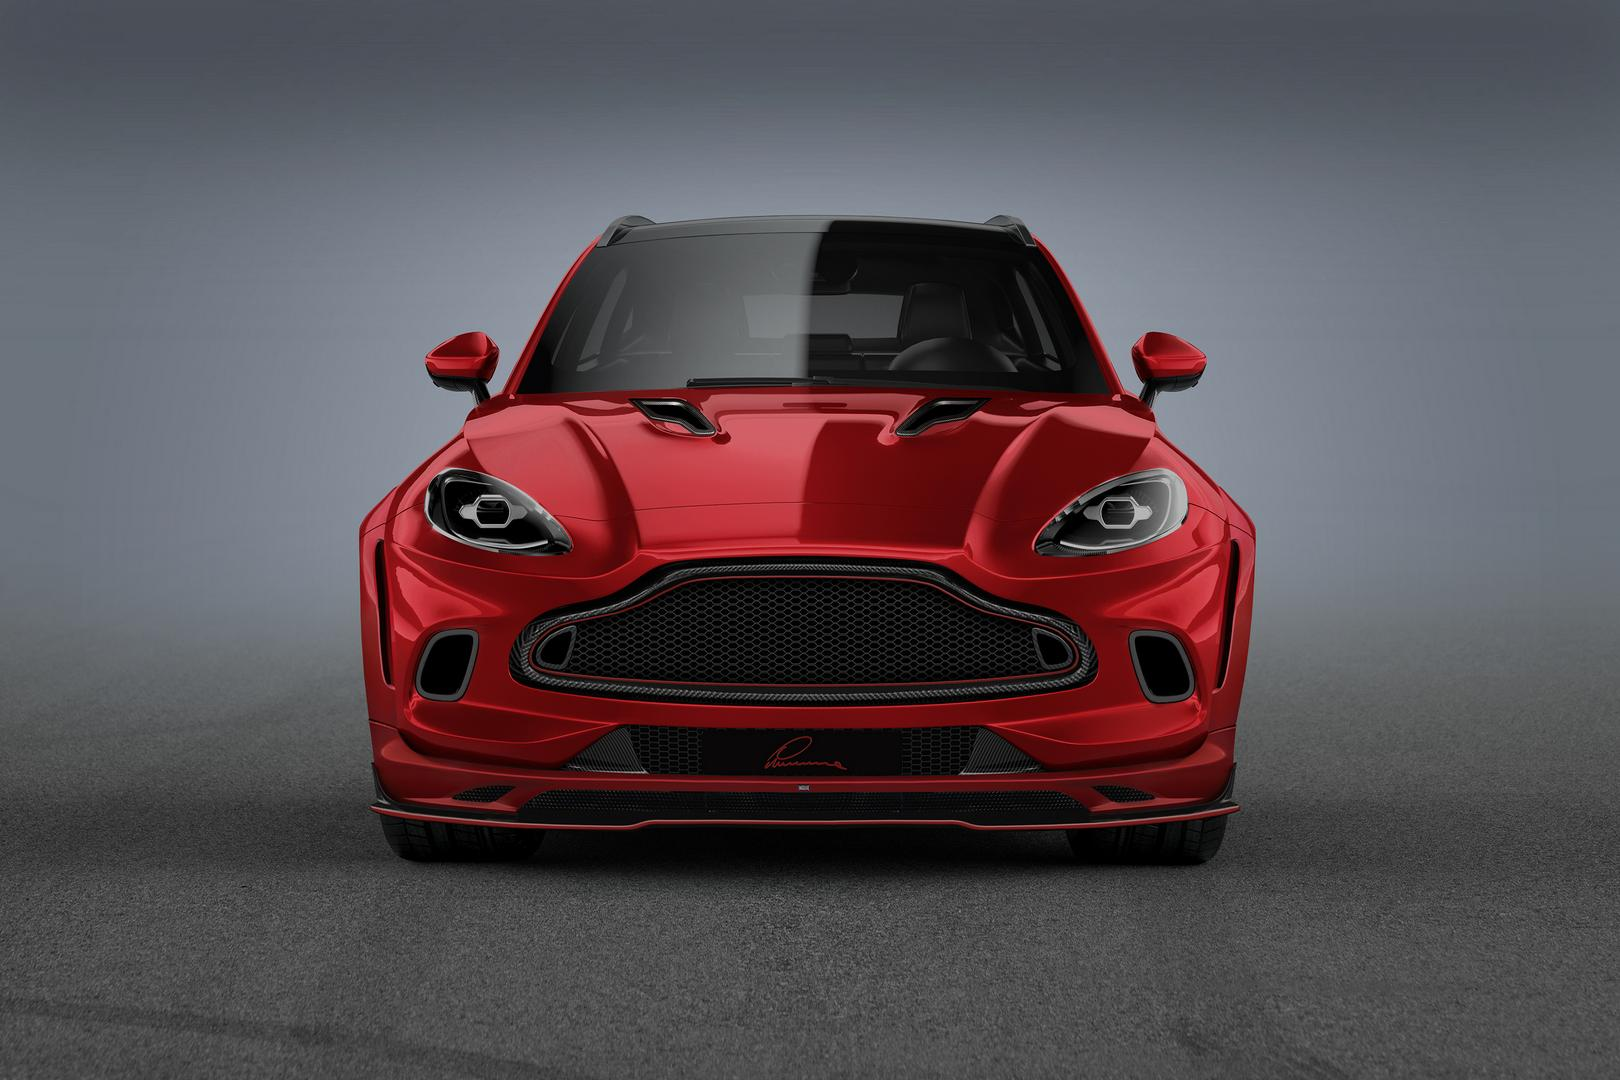 Red Aston Martin DBX Front